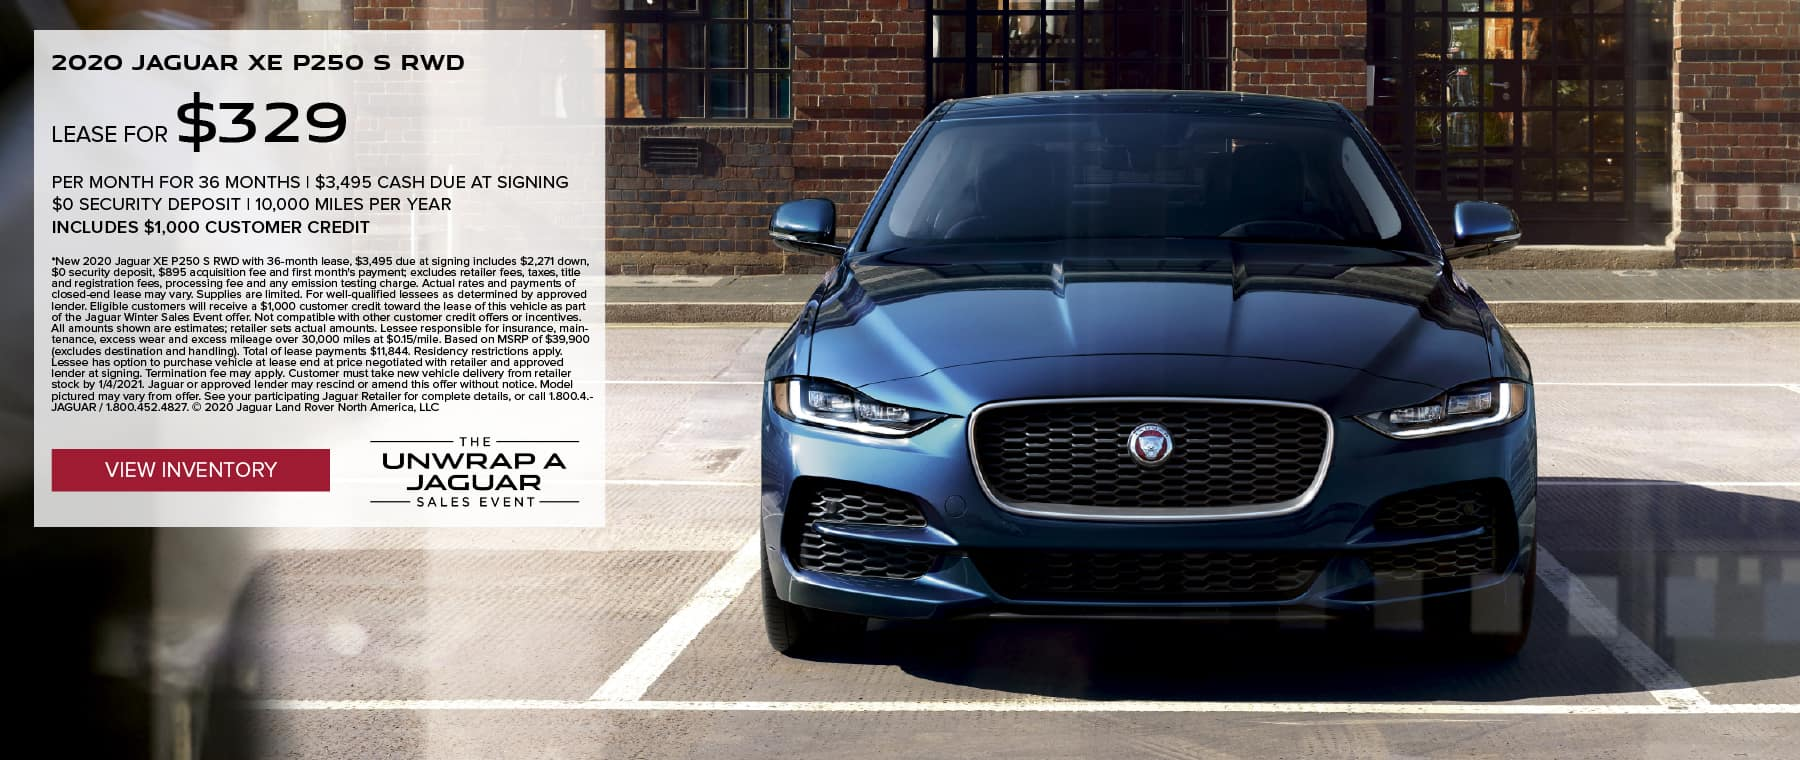 2020 JAGUAR XE P250 S RWD. $329 PER MONTH. 36 MONTH LEASE TERM WITH $3,495 DUE AT SIGNING. $0 SECURITY DEPOSIT. 10,000 MILES PER YEAR. EXCLUDES RETAILER FEES, TAXES, TITLE AND REGISTRATION FEES, PROCESSING FEE AND ANY EMISSION TESTING CHARGE. INCLUDES $1,000 CUSTOMER CREDIT. OFFER ENDS 1/4/2020. VIEW INVENTORY. BLUE JAGUAR XE PARKED IN FRONT OF A STORE FRONT.